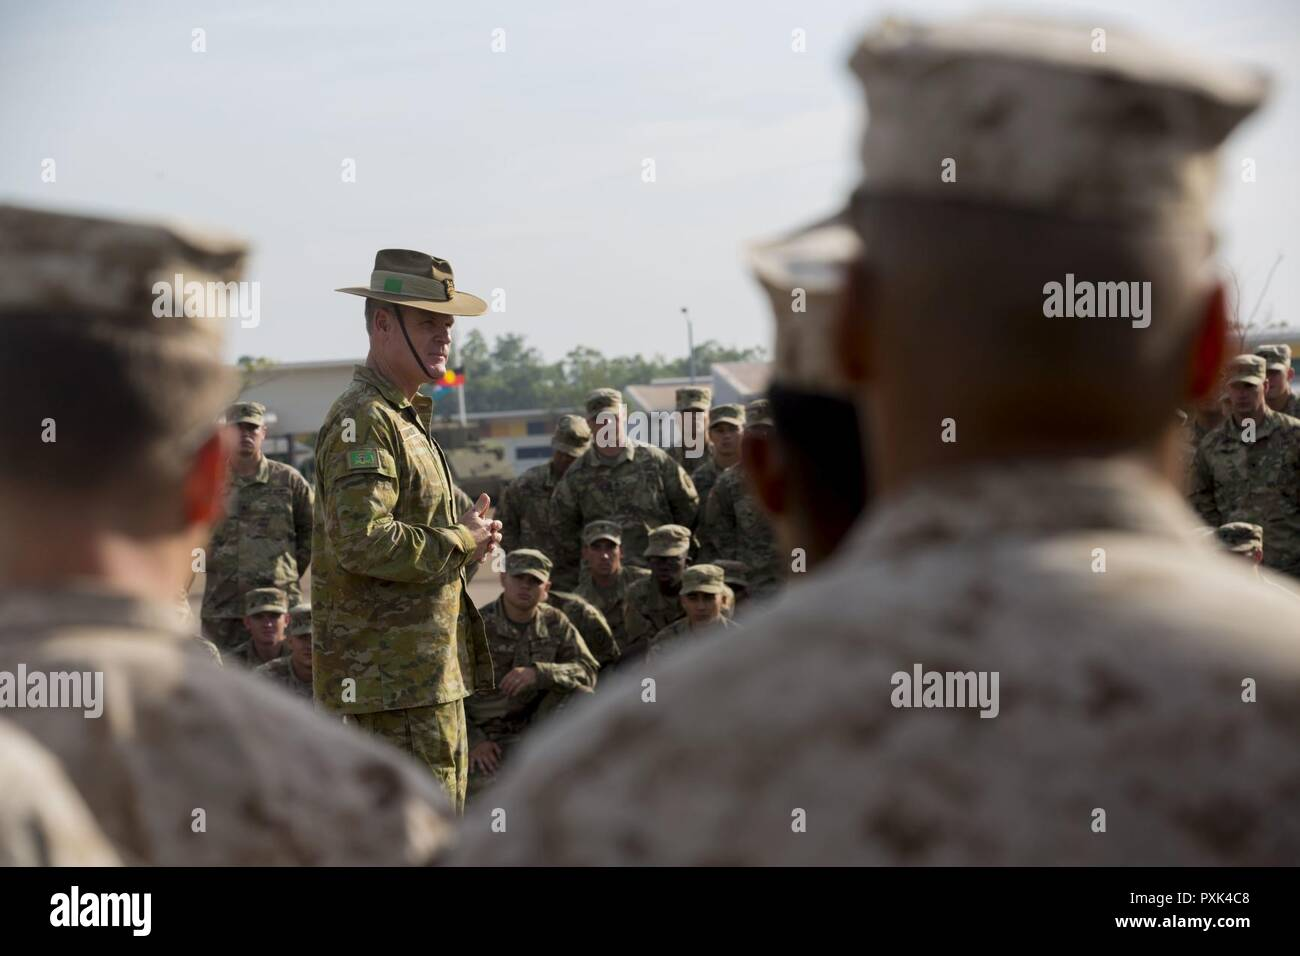 AUSTRALIAN ARMY BASE ROBORTSON BARRACKS, Darwin – Brig. Gen. Ben James, 1st Brigade Commander, Australian Defence Force, speaks to the service members who participated in Exercise Southern Jackaroo 2017 during a closing ceremony, June 1, 2017. Southern Jackaroo 2017 was a multi-lateral combined arms training activity between the U.S. Marines, Australian Army, U.S. Army and Japan Ground Self-Defense Force that allowed participants to train and share military tactics. Stock Photo